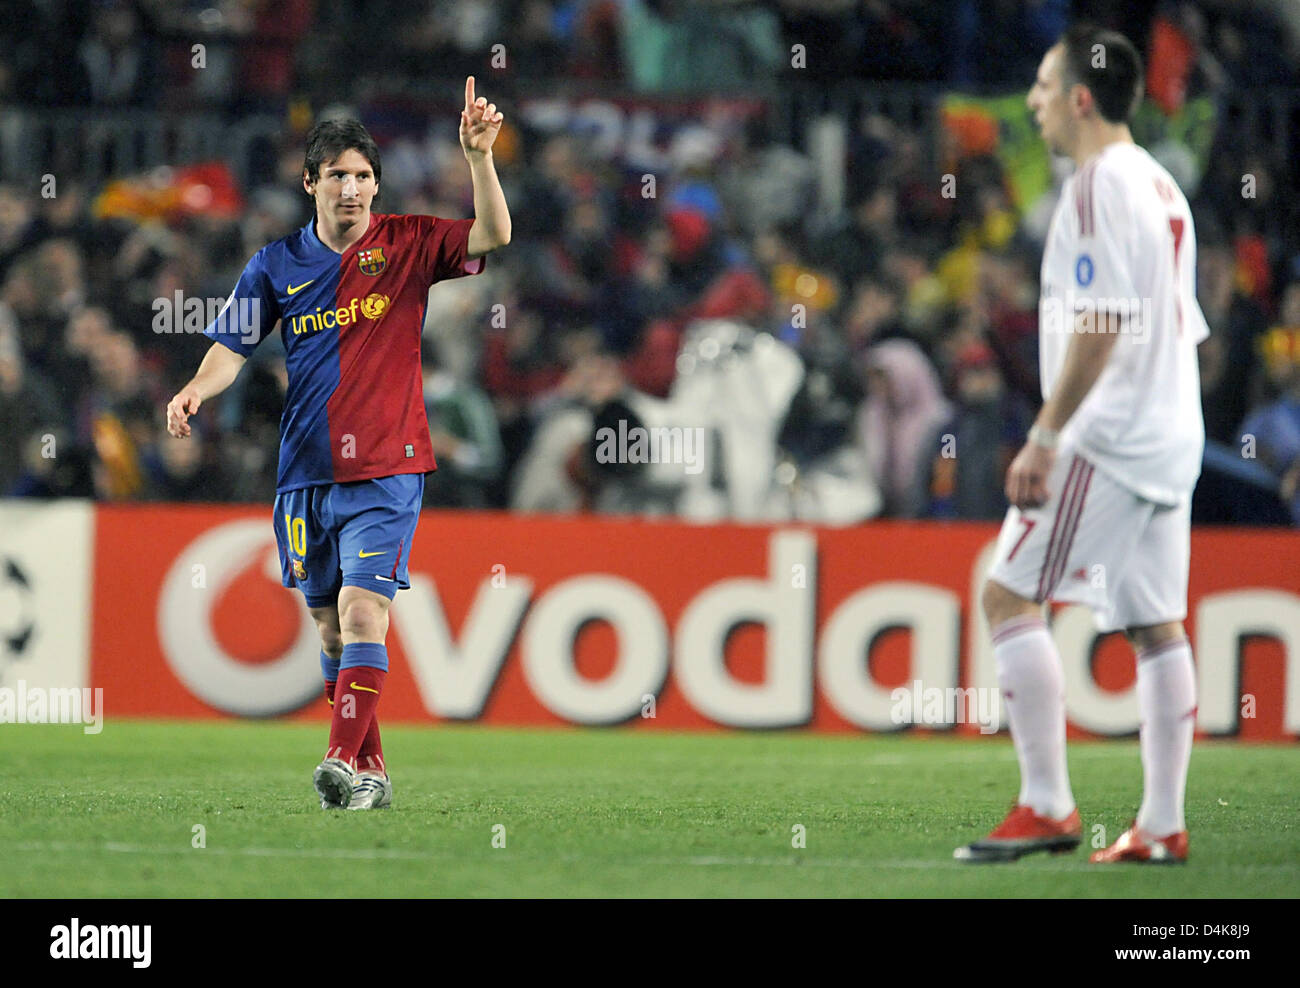 Barcelona S Lionel Messi L Cheers After His Goal To 1 0 While Stock Photo Alamy